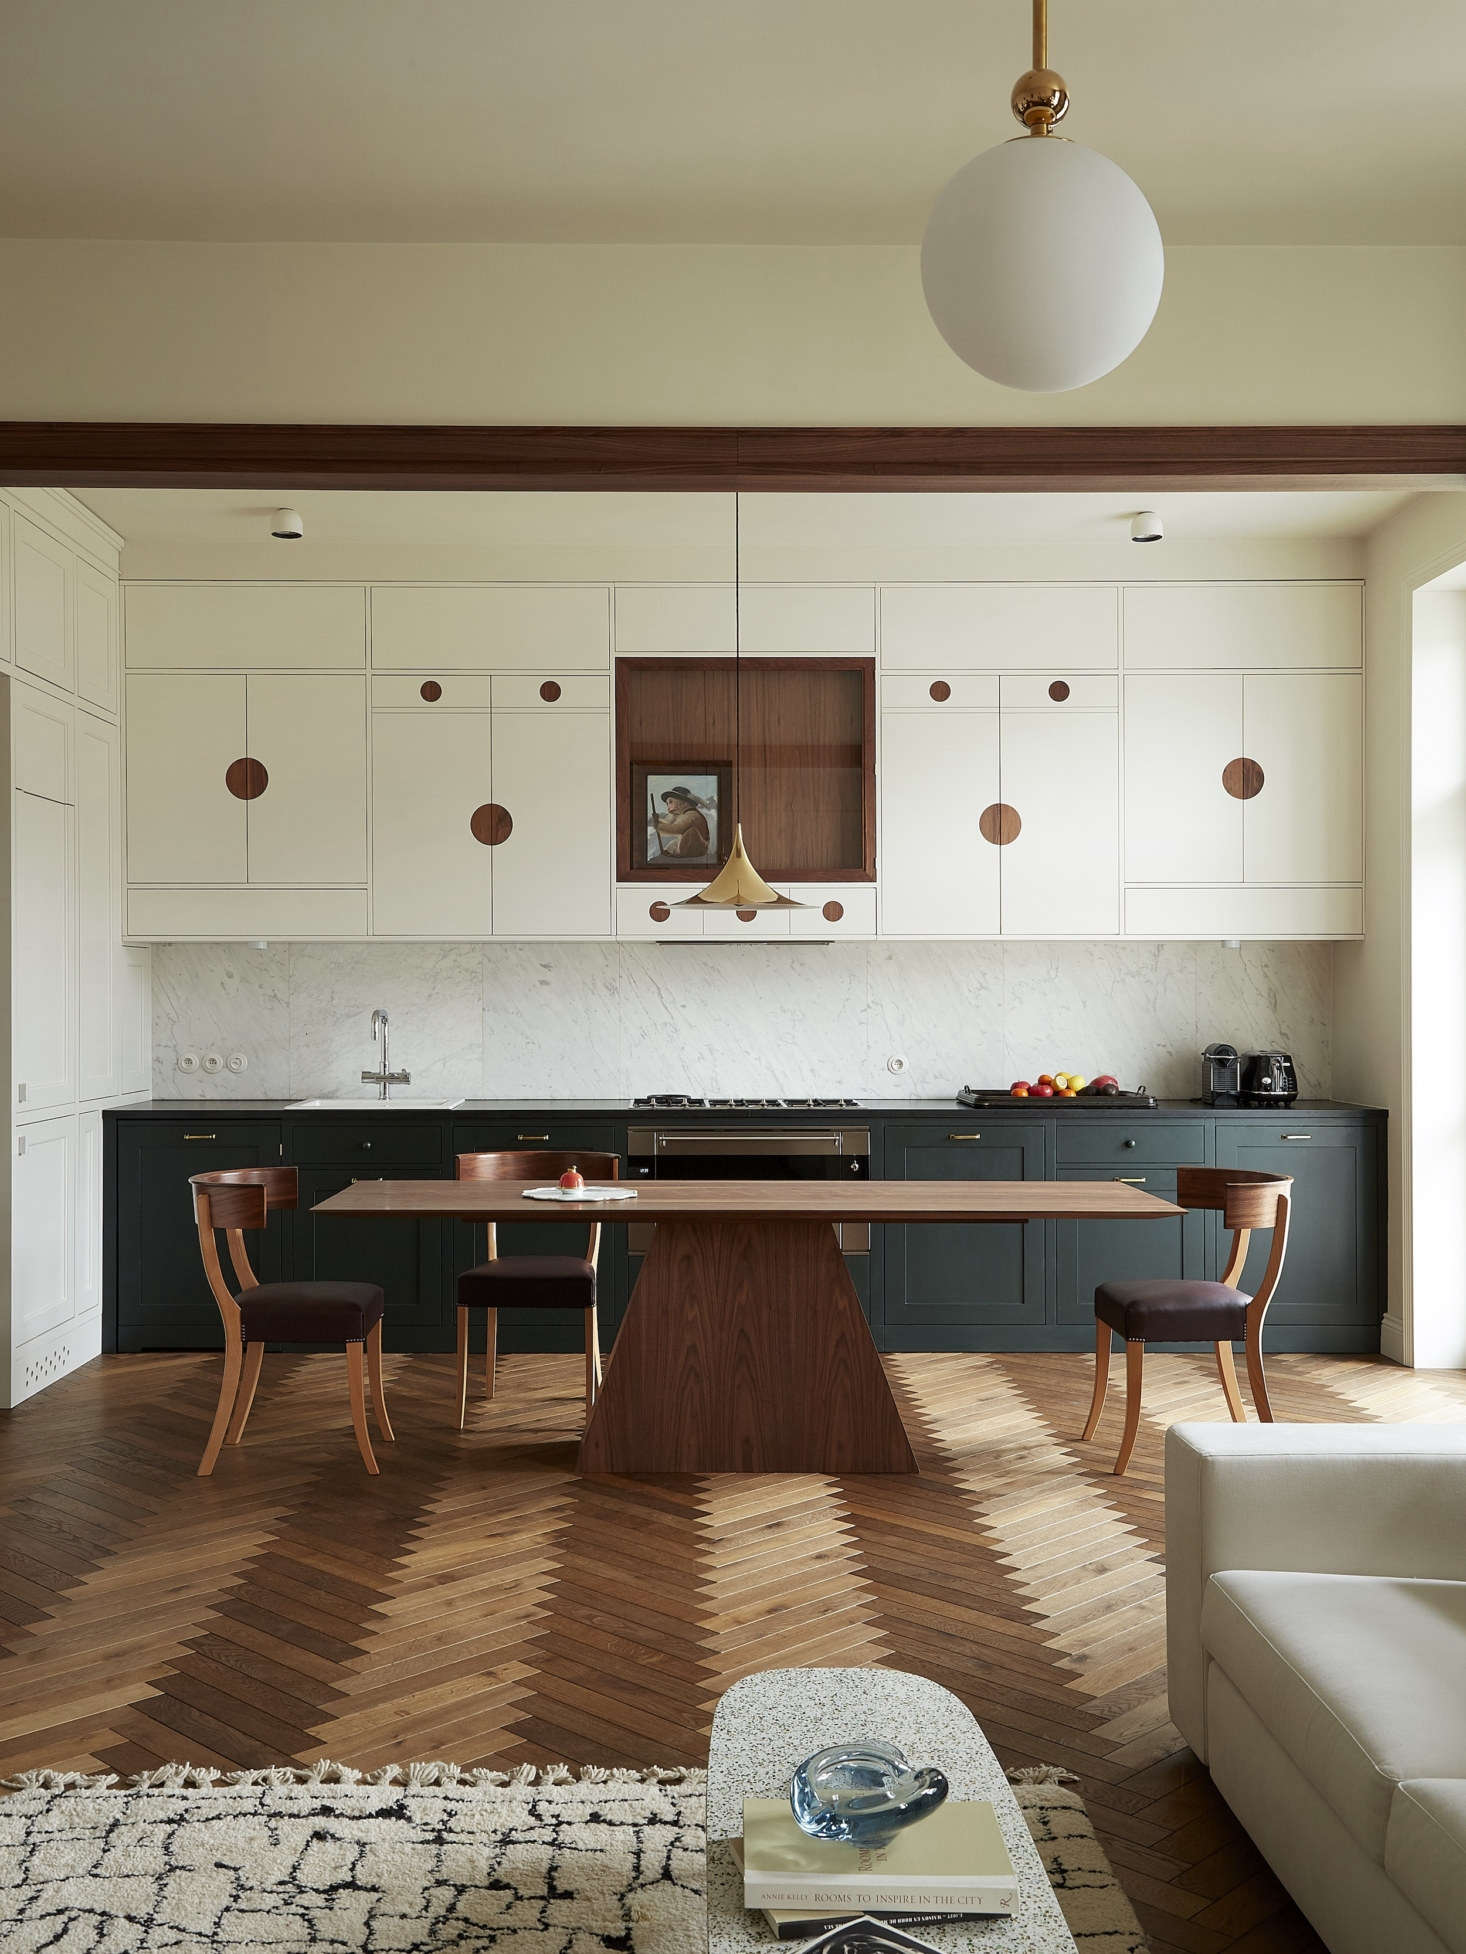 The kitchen, open to the living room, was inspired by a Josef Frank-designed sideboard featuring walnut discs and glass doors. &#8